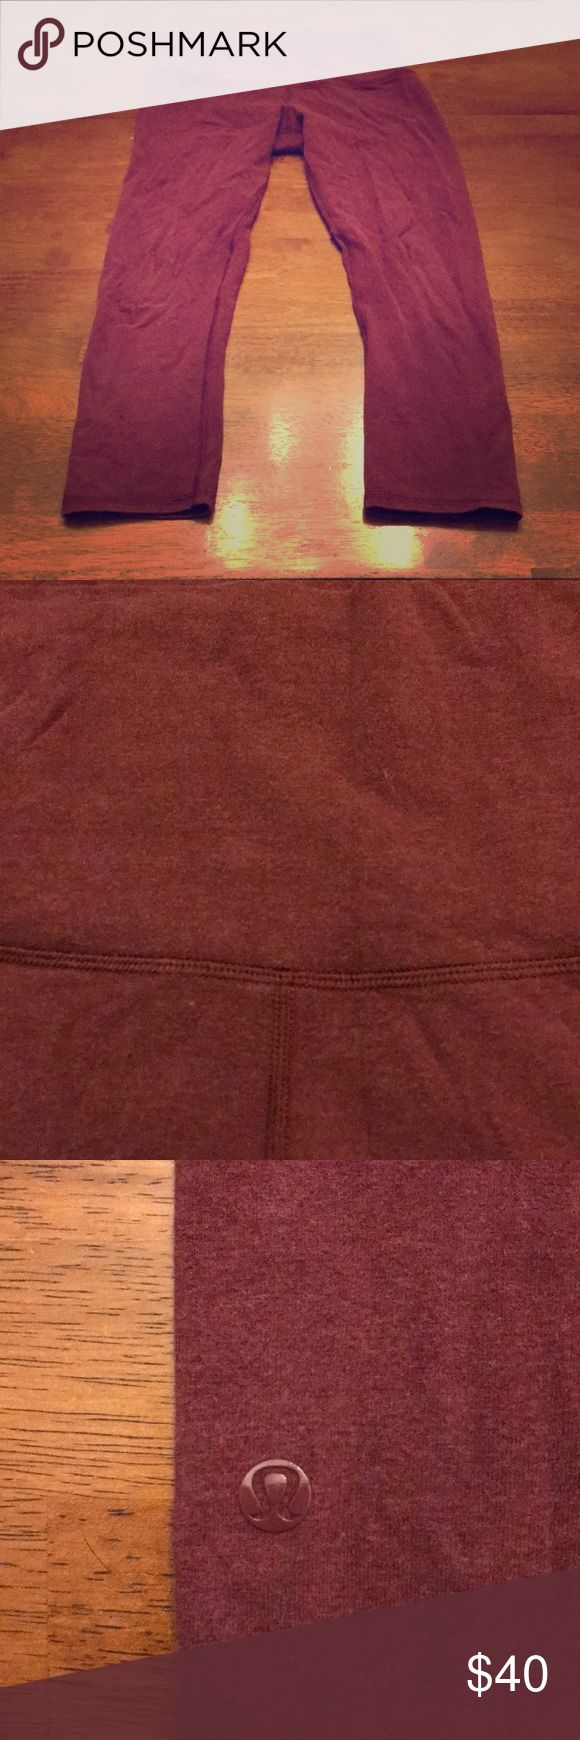 lululemon athletica cotton WU crops Only worn a few times....burgundy in color, high waisted, cotton crops! lululemon athletica Pants Leggings